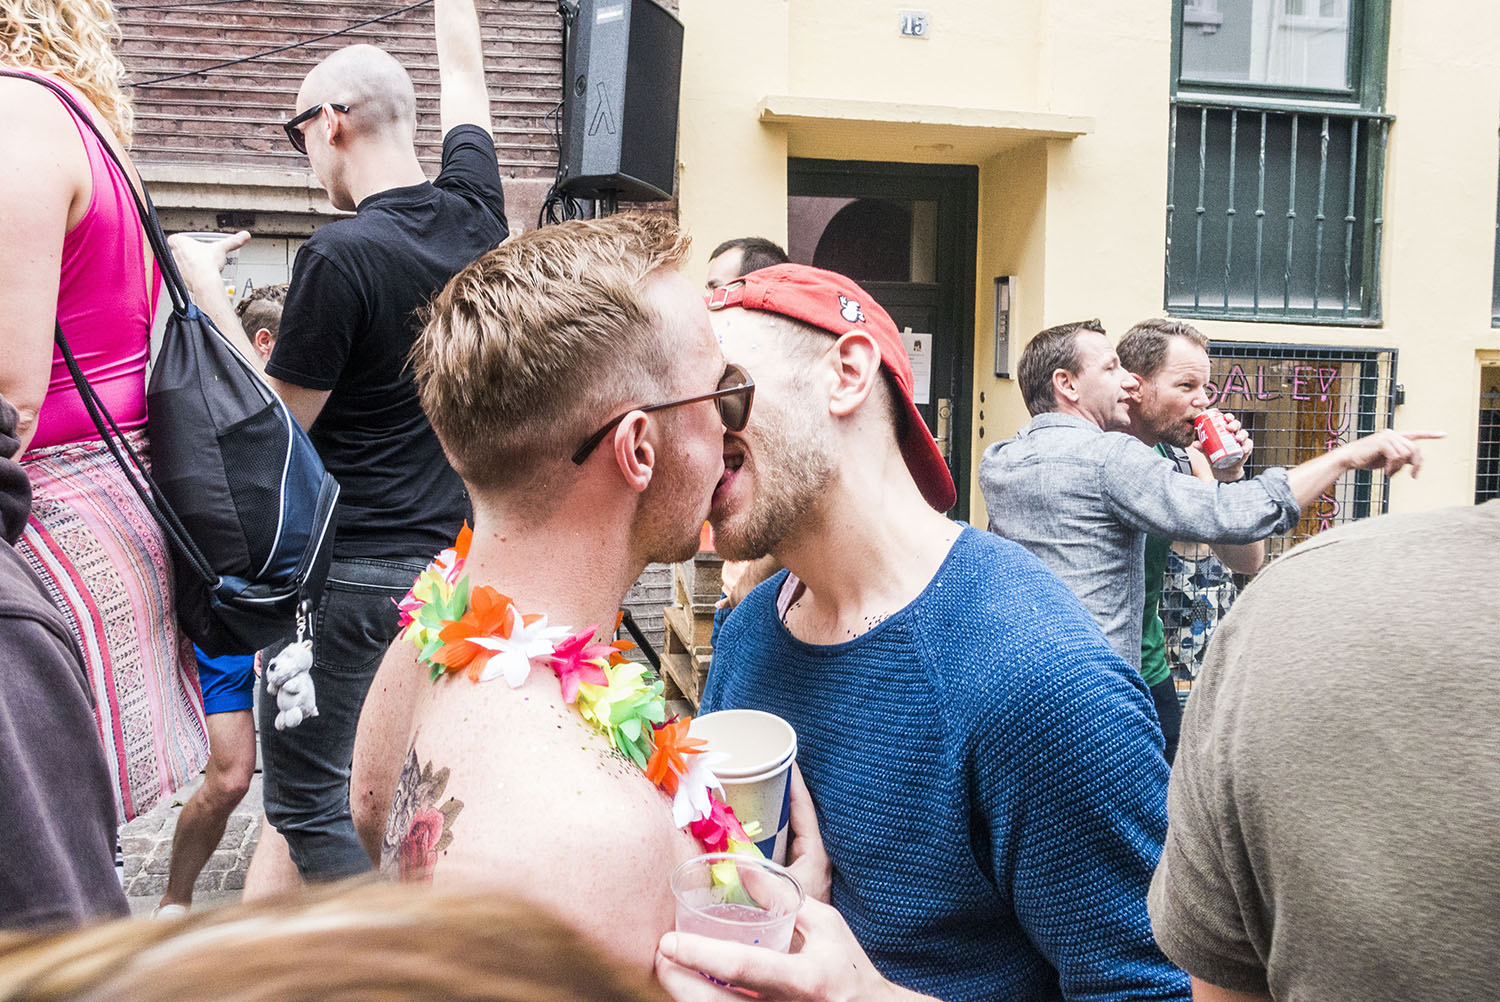 CphPride2016_HelenaLundquist_blog_52